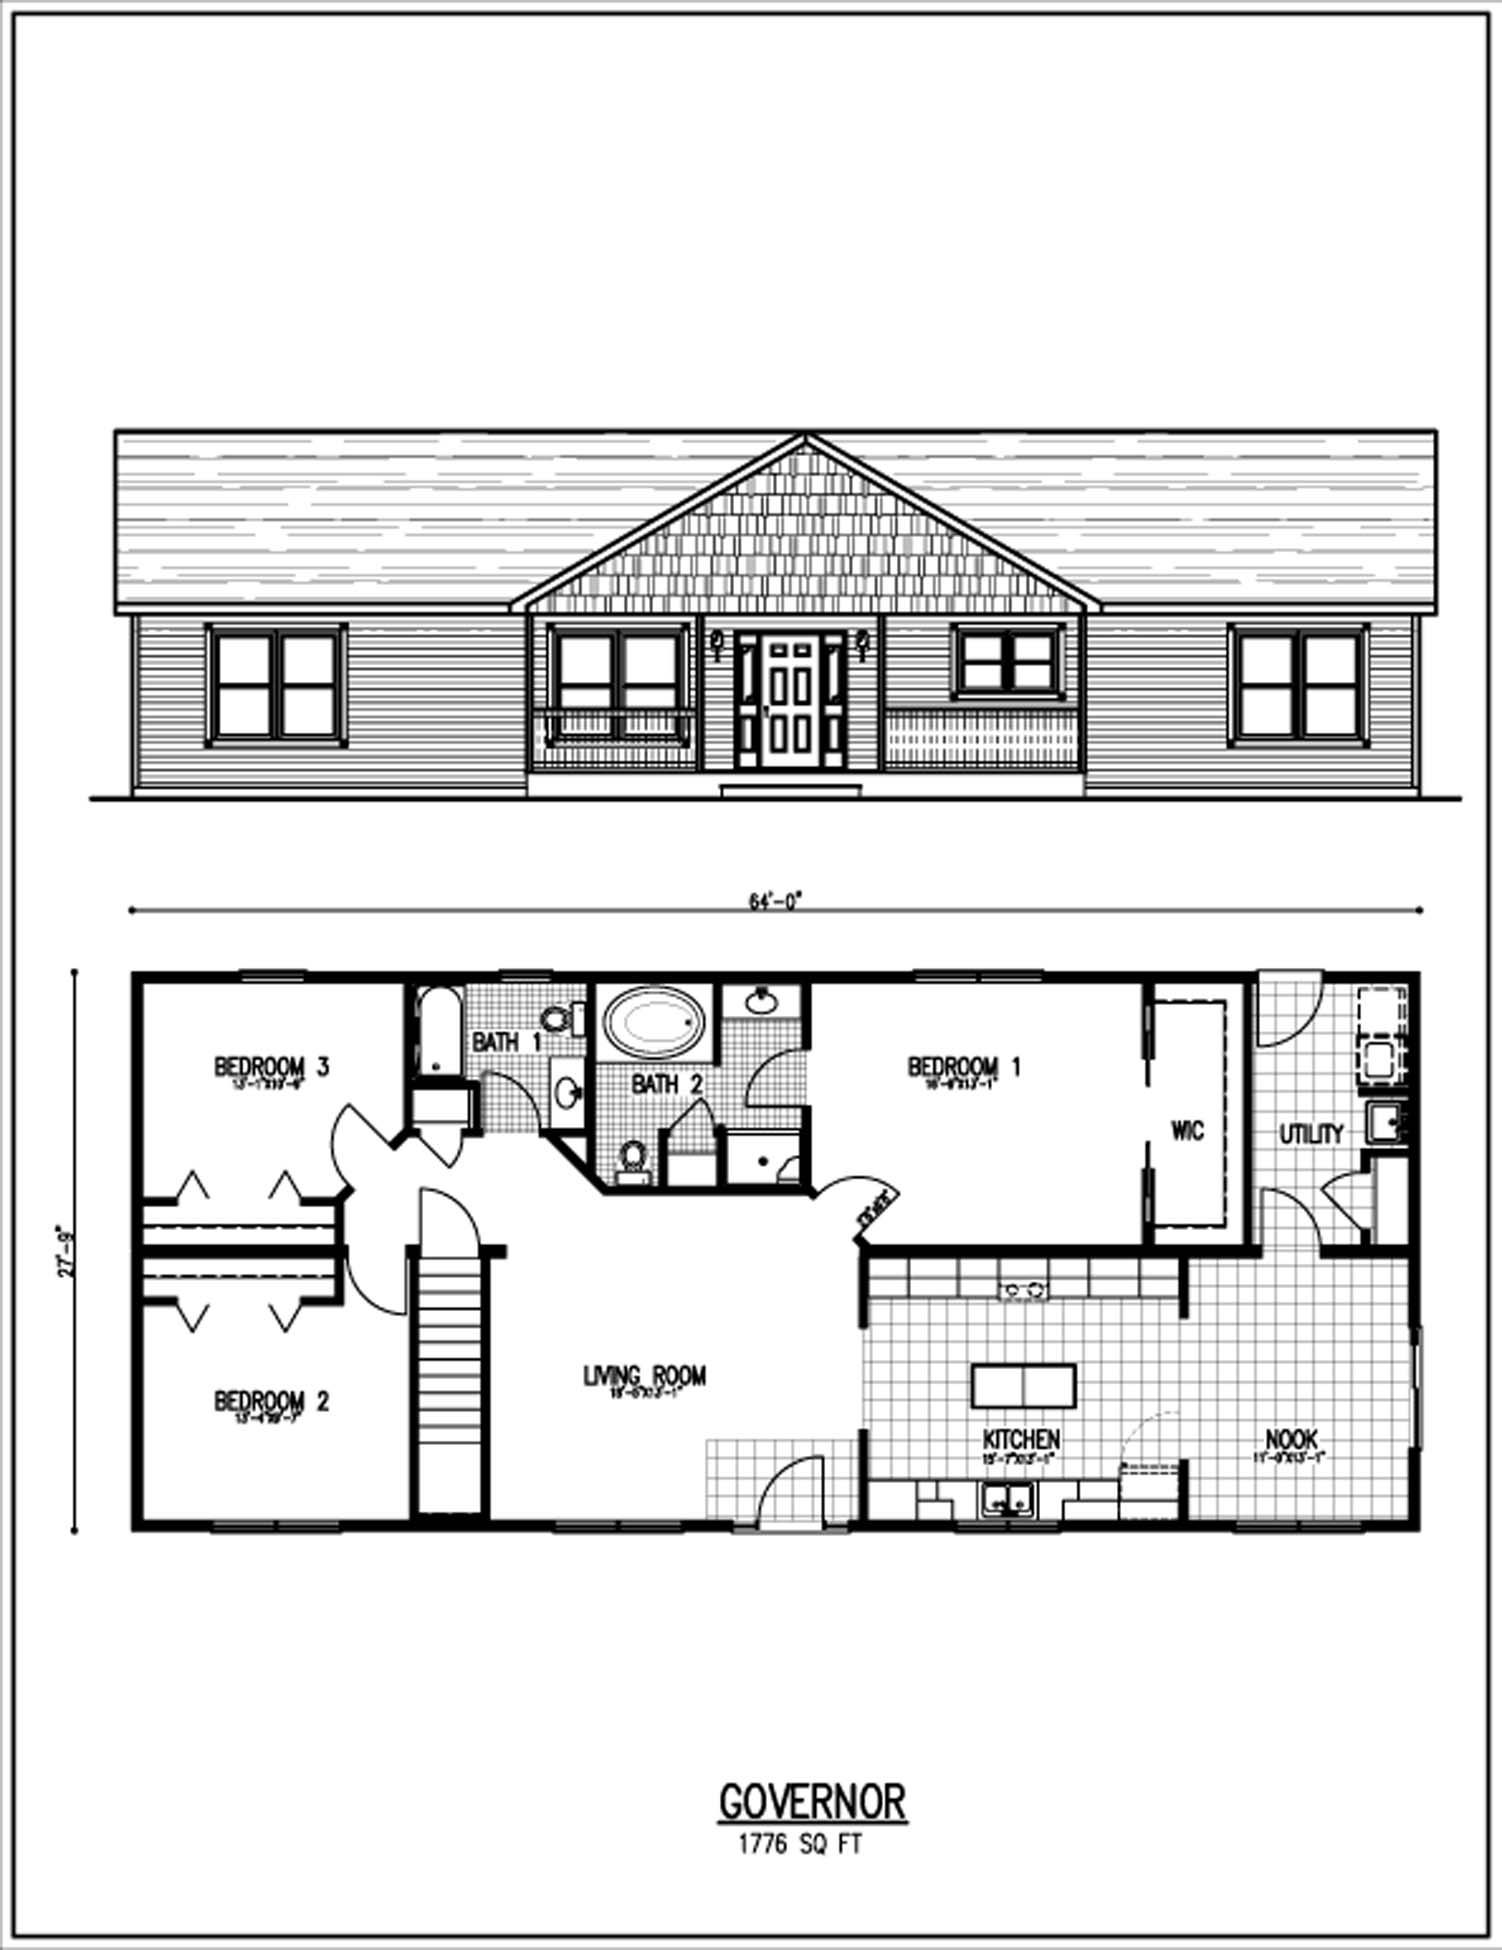 Floor plans by shawam082498 on pinterest floor plans for Ranch style house designs floor plans